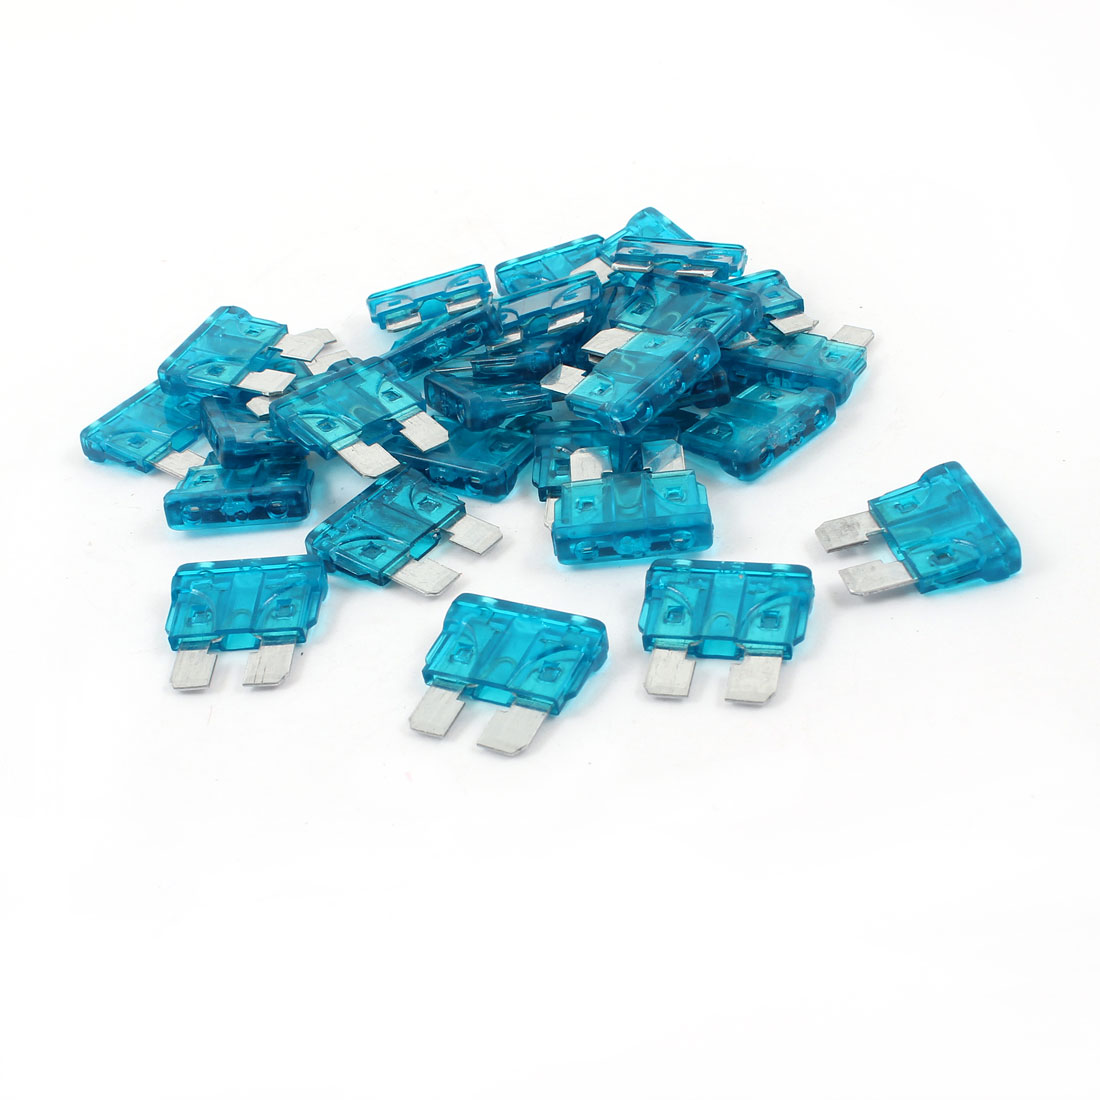 30 Pcs 15Amp 15A Teal Blue Body Two Prong Blade Plug-in ATC Fuses